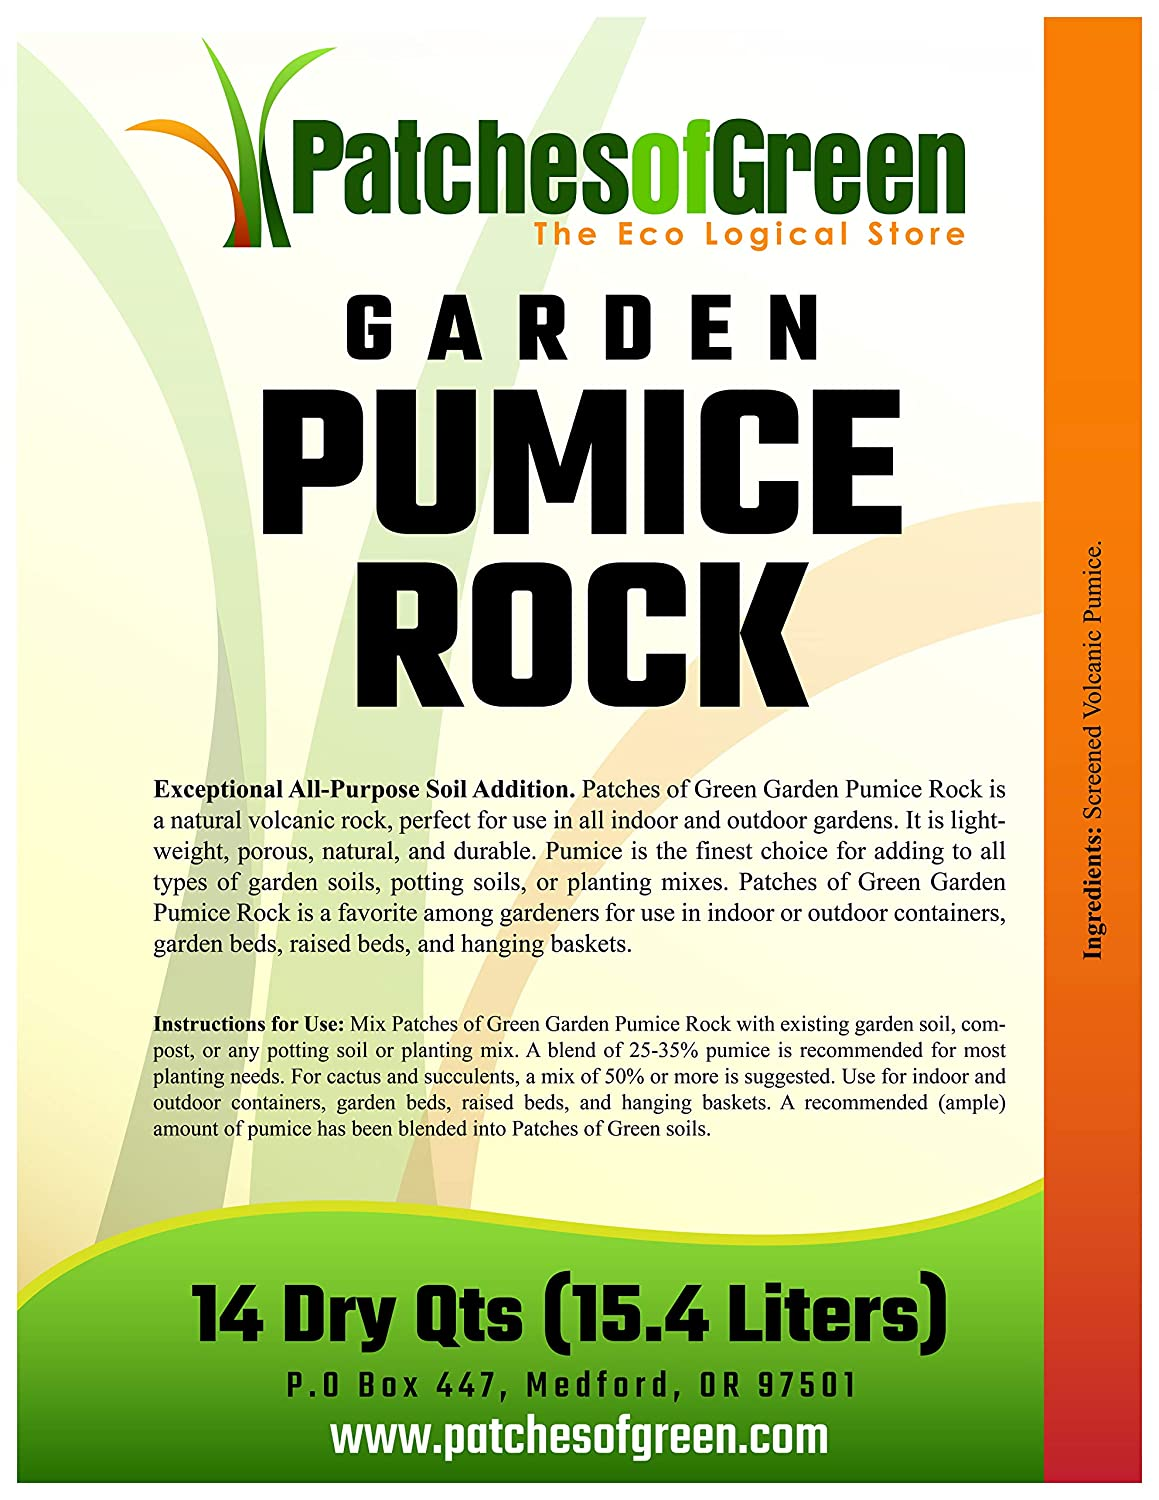 Patches of Green Volcanic Garden Pumice Rock from 14 Dry Quarts Bag